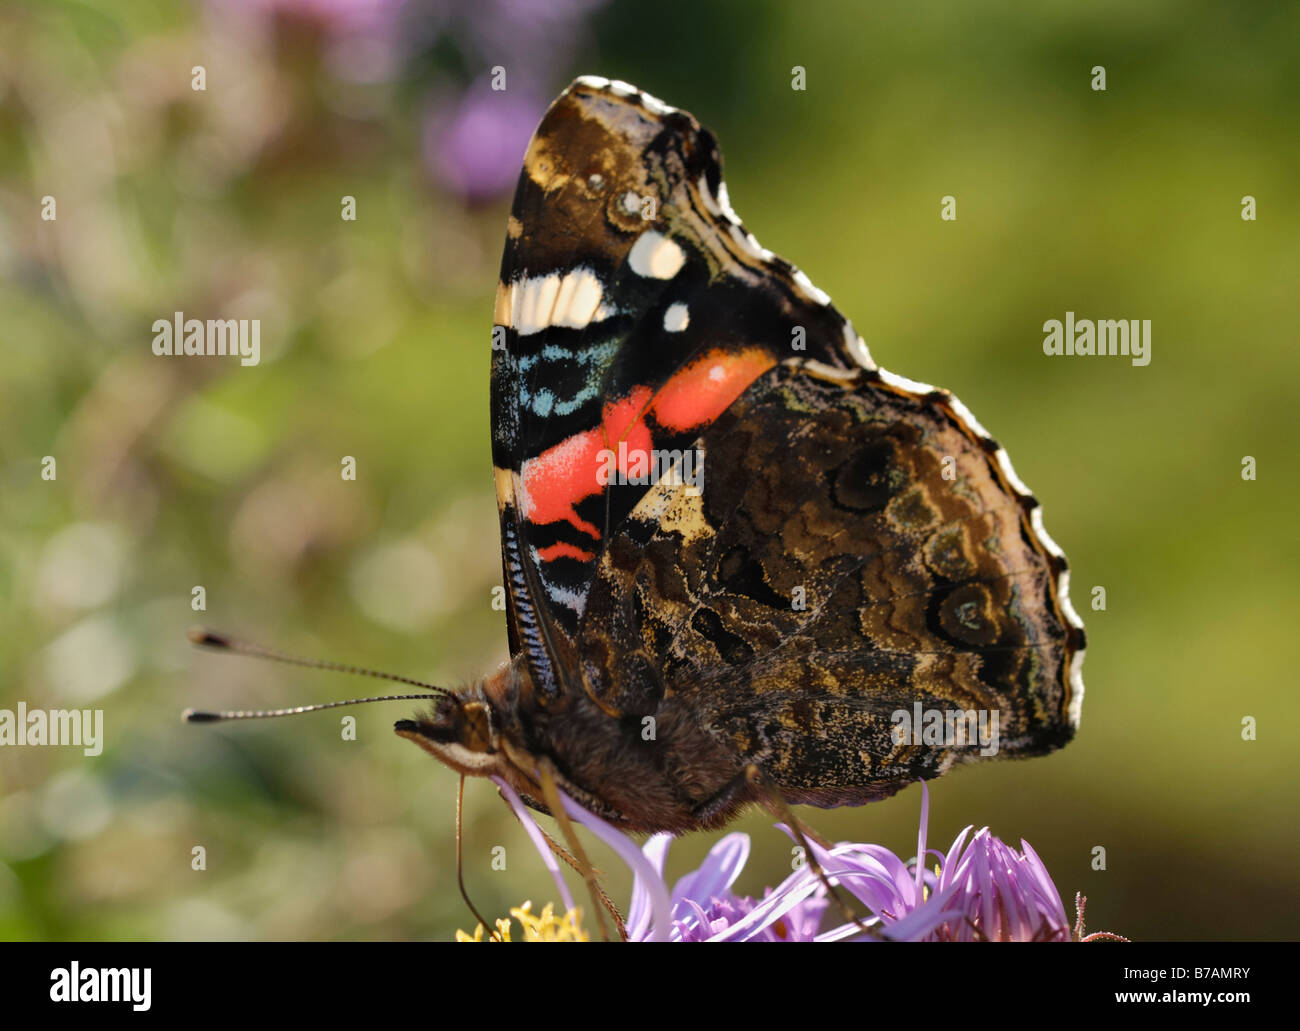 Red Admiral (Vanessa atalanta) drinking nectar from the violet blossom of an aromatic aster (Aster oblongifolius) - Stock Image